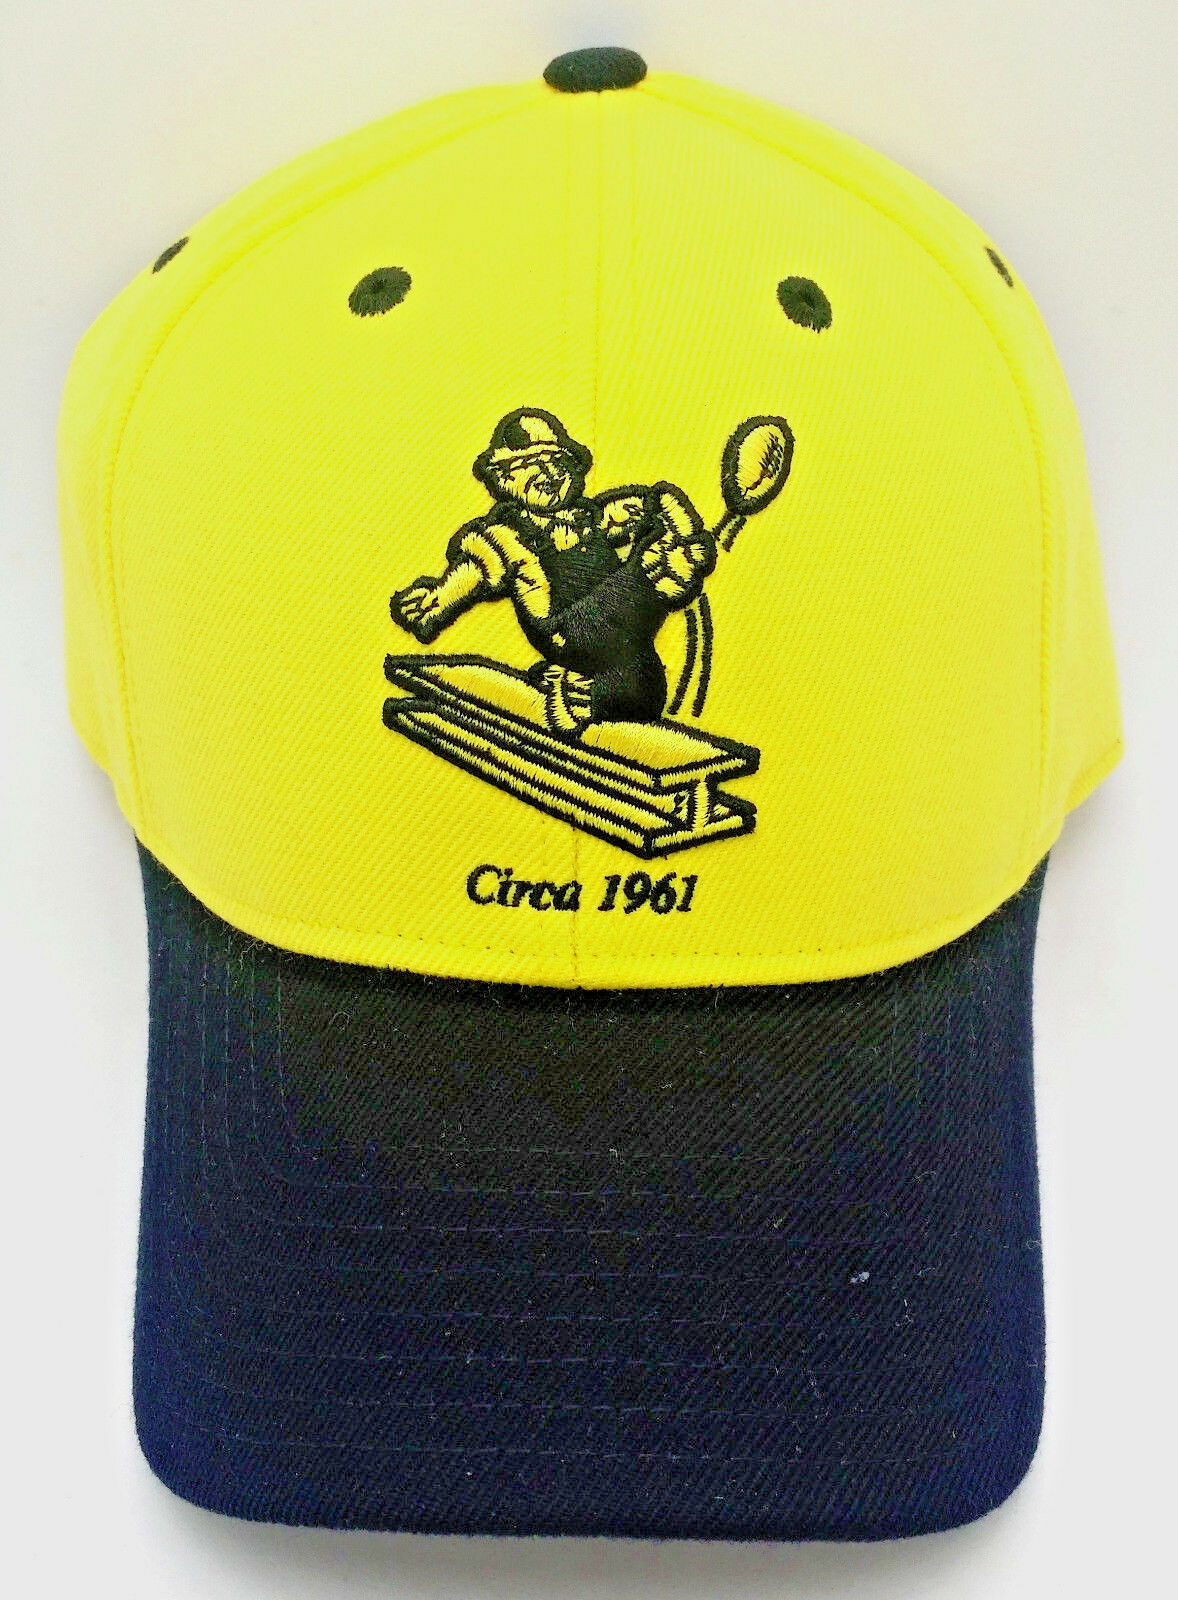 Pittsburgh Steelers Hat/Ballcap  CIRCA 1961  Steelworker REEBOK  2-Tone Hat by REEBOK Steelworker 336964